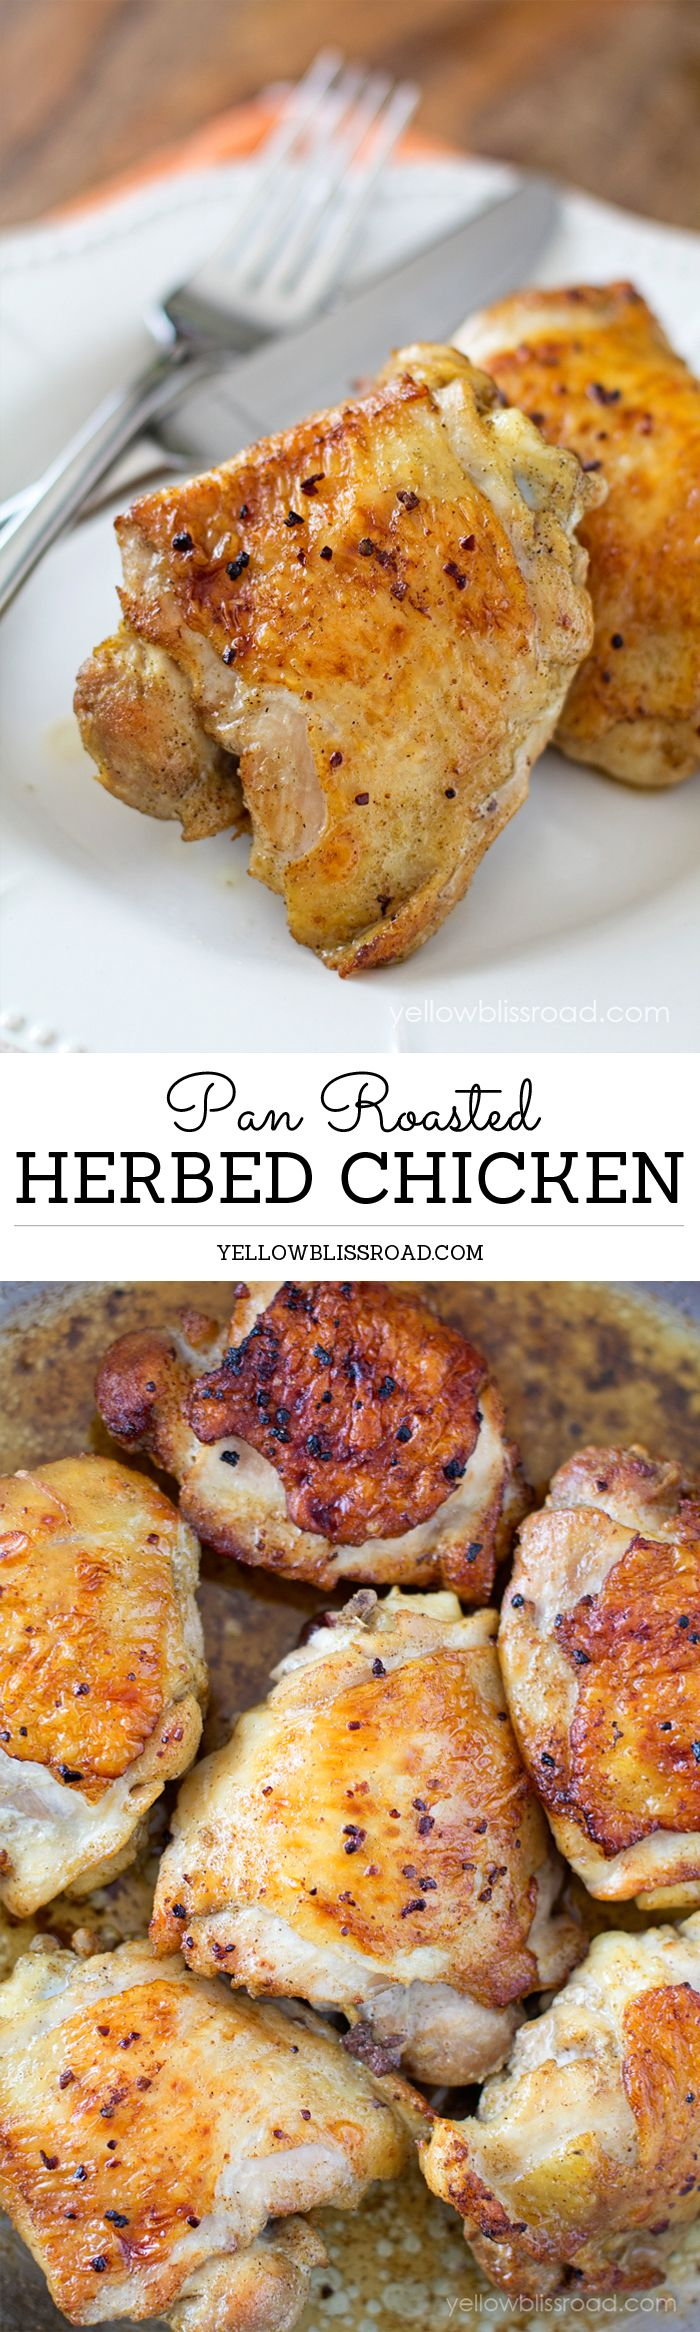 Pan Roasted Herbed Ckicken, deliciously savory and so easy to make.